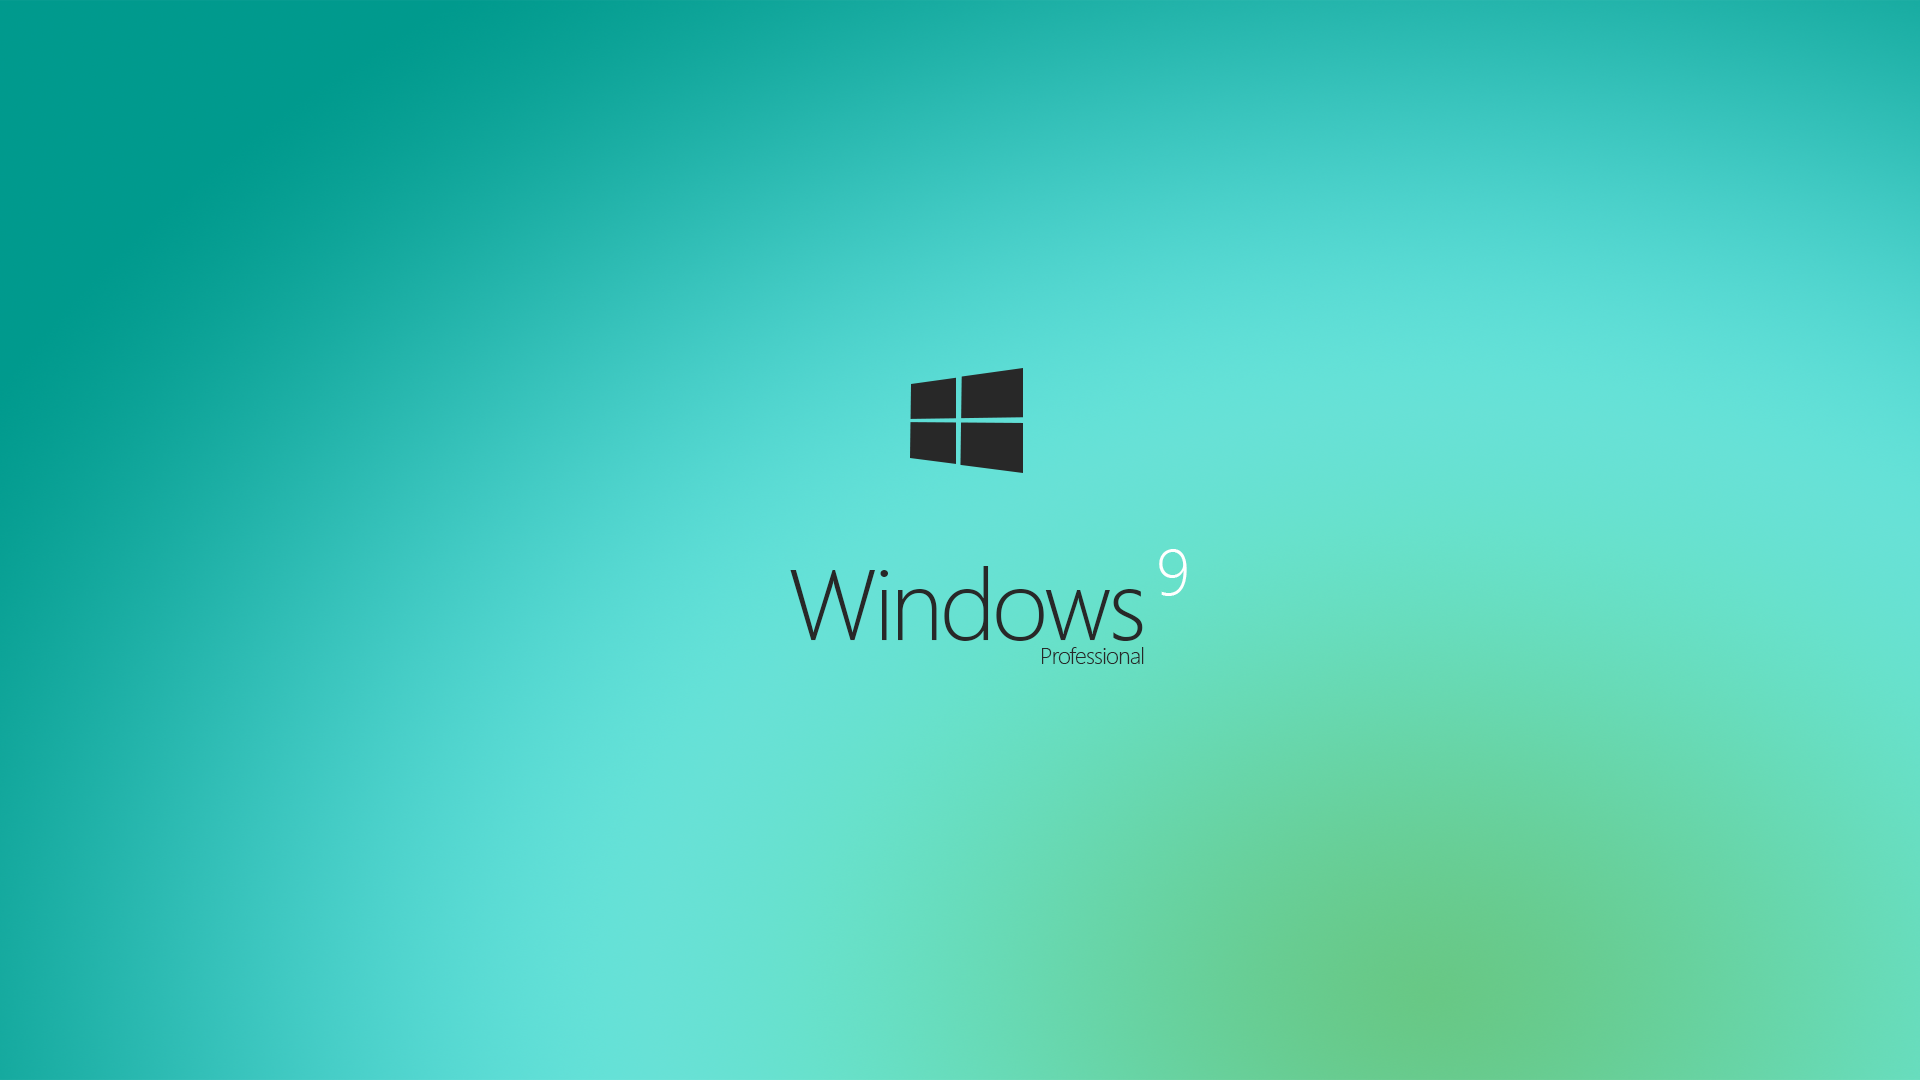 Windows 9 wallpapers